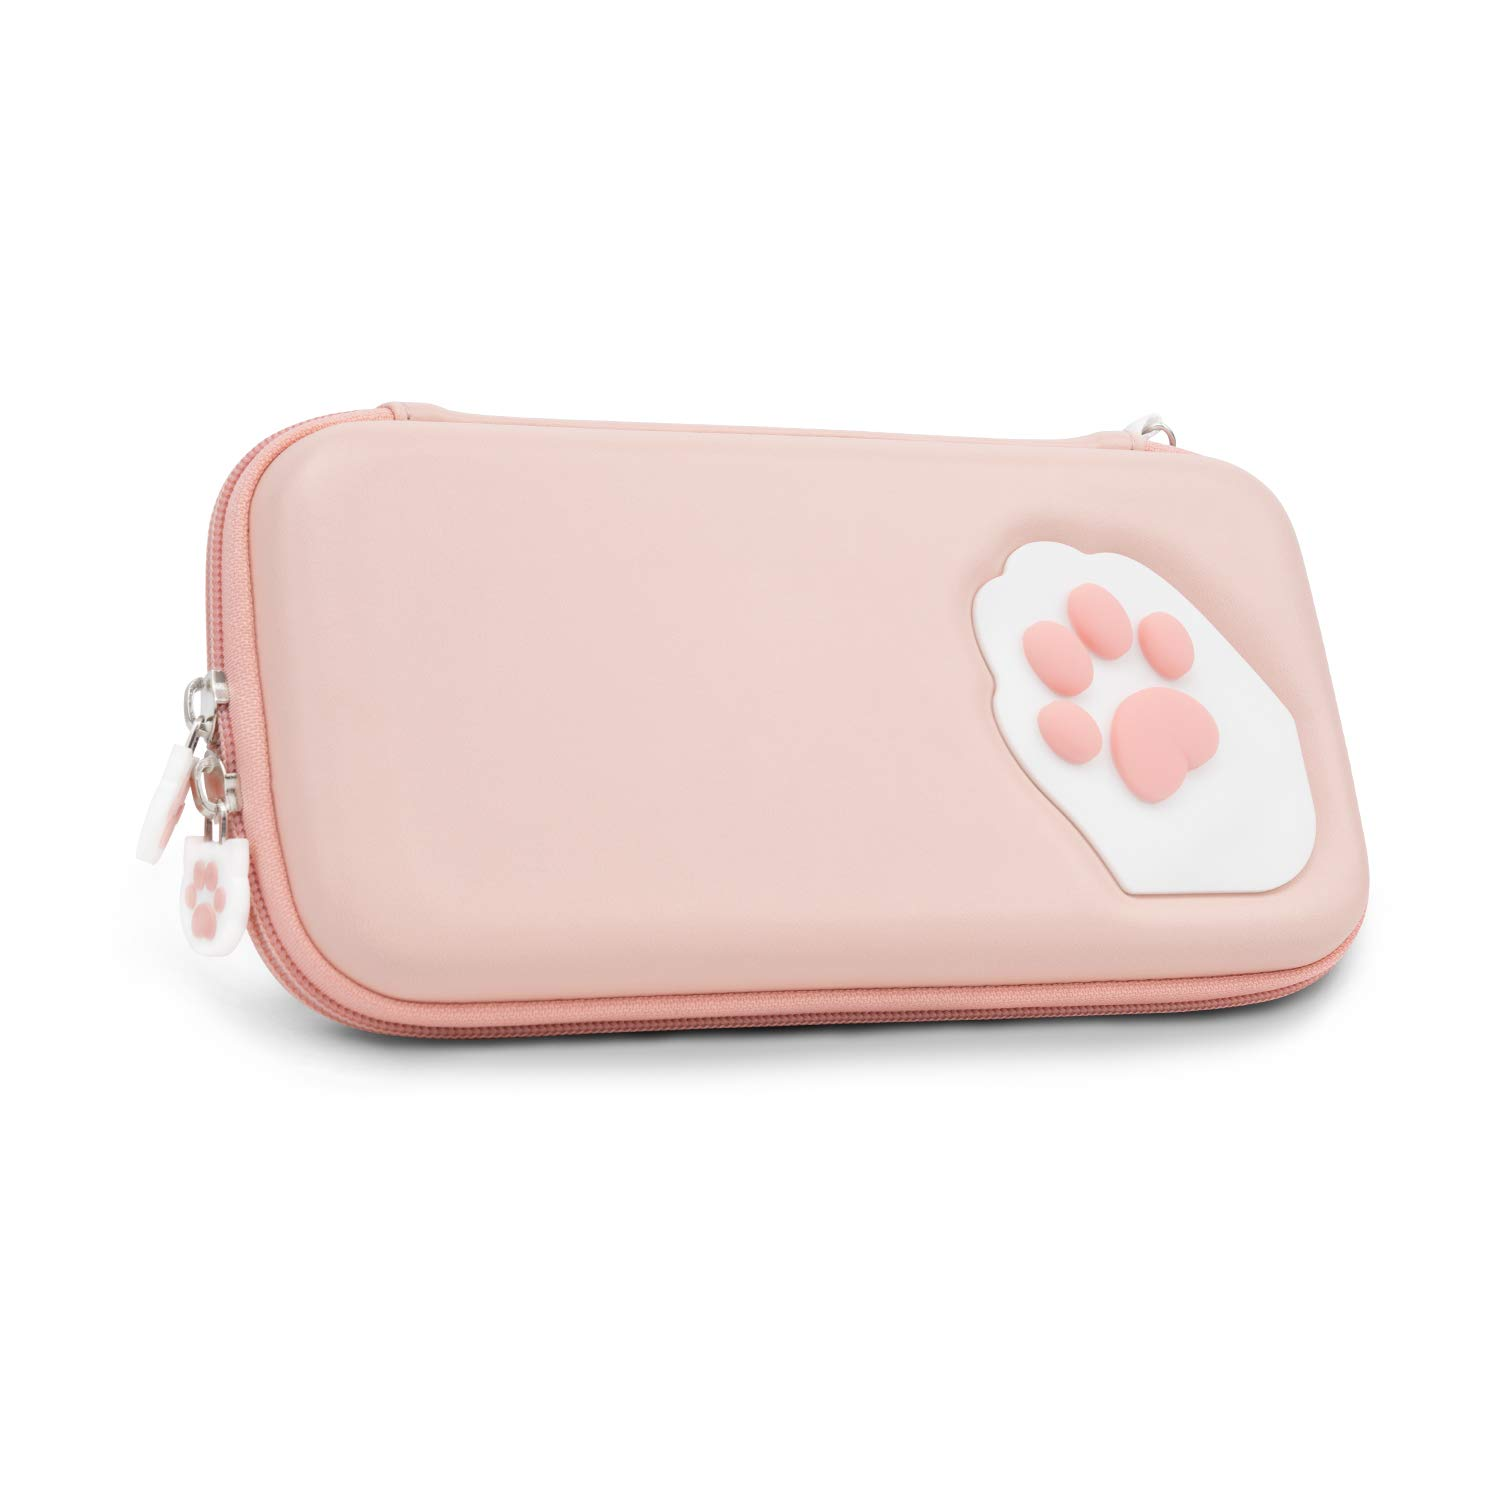 Geekshare Cute Cat Claw Case Compatible with Nintendo Switch Lite- Portable Hardshell Slim Travel Carrying Case fit Switch Lite & Game Accessories - A Removable Wrist Strap (Pink)